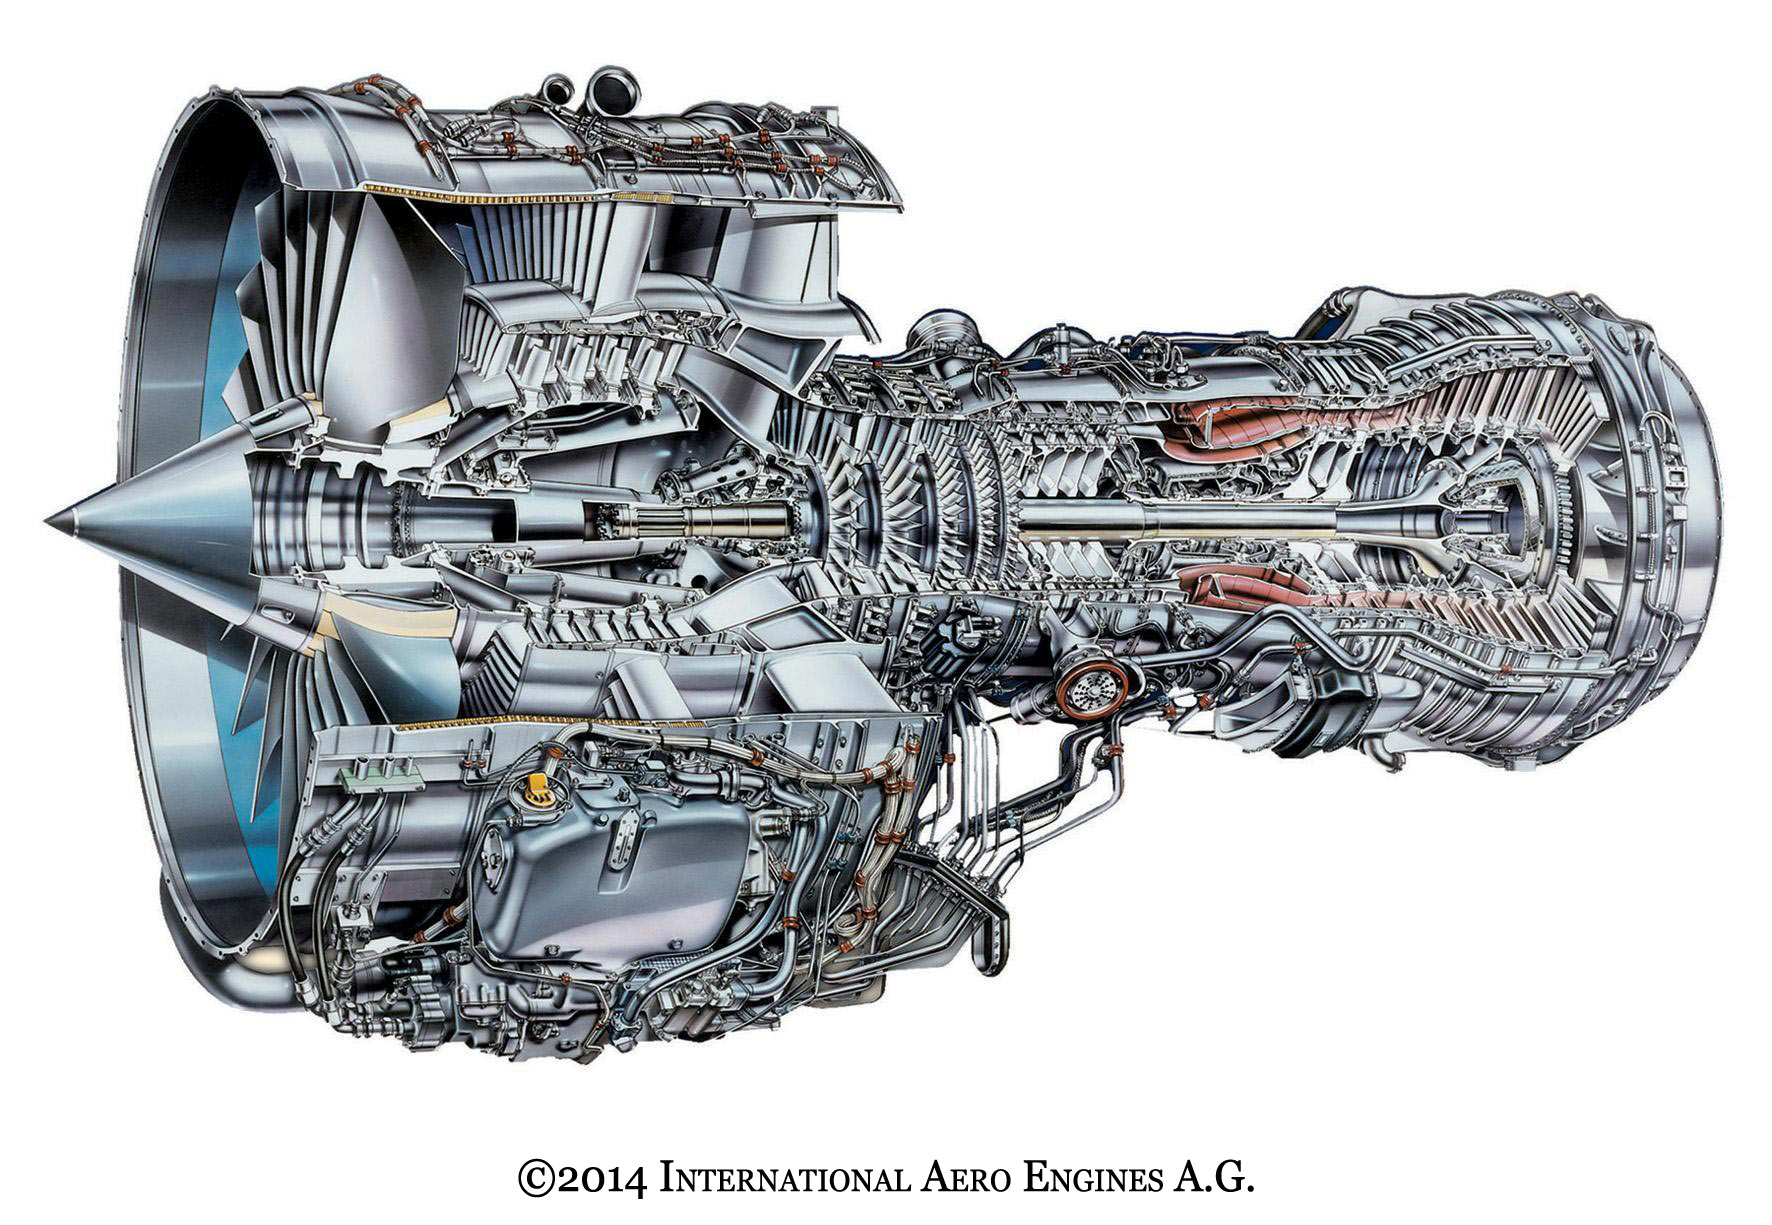 v2500 engine pratt whitney rh pw utc com